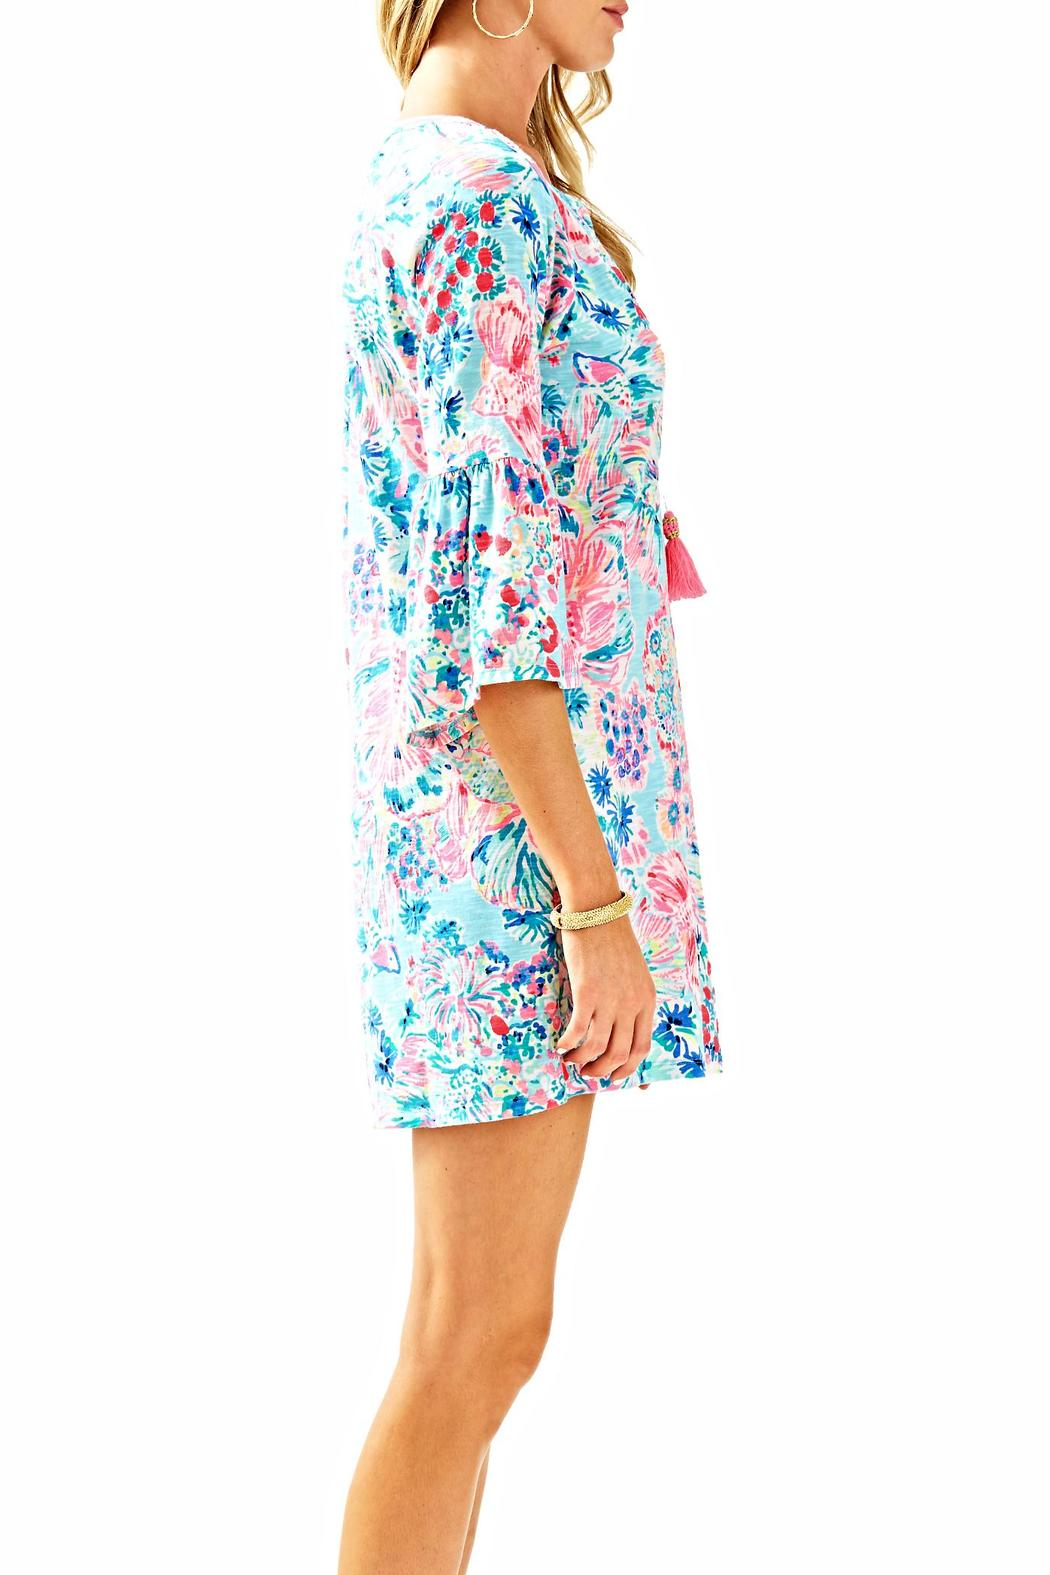 Lilly Pulitzer Del Lago Tunic Dress - Side Cropped Image